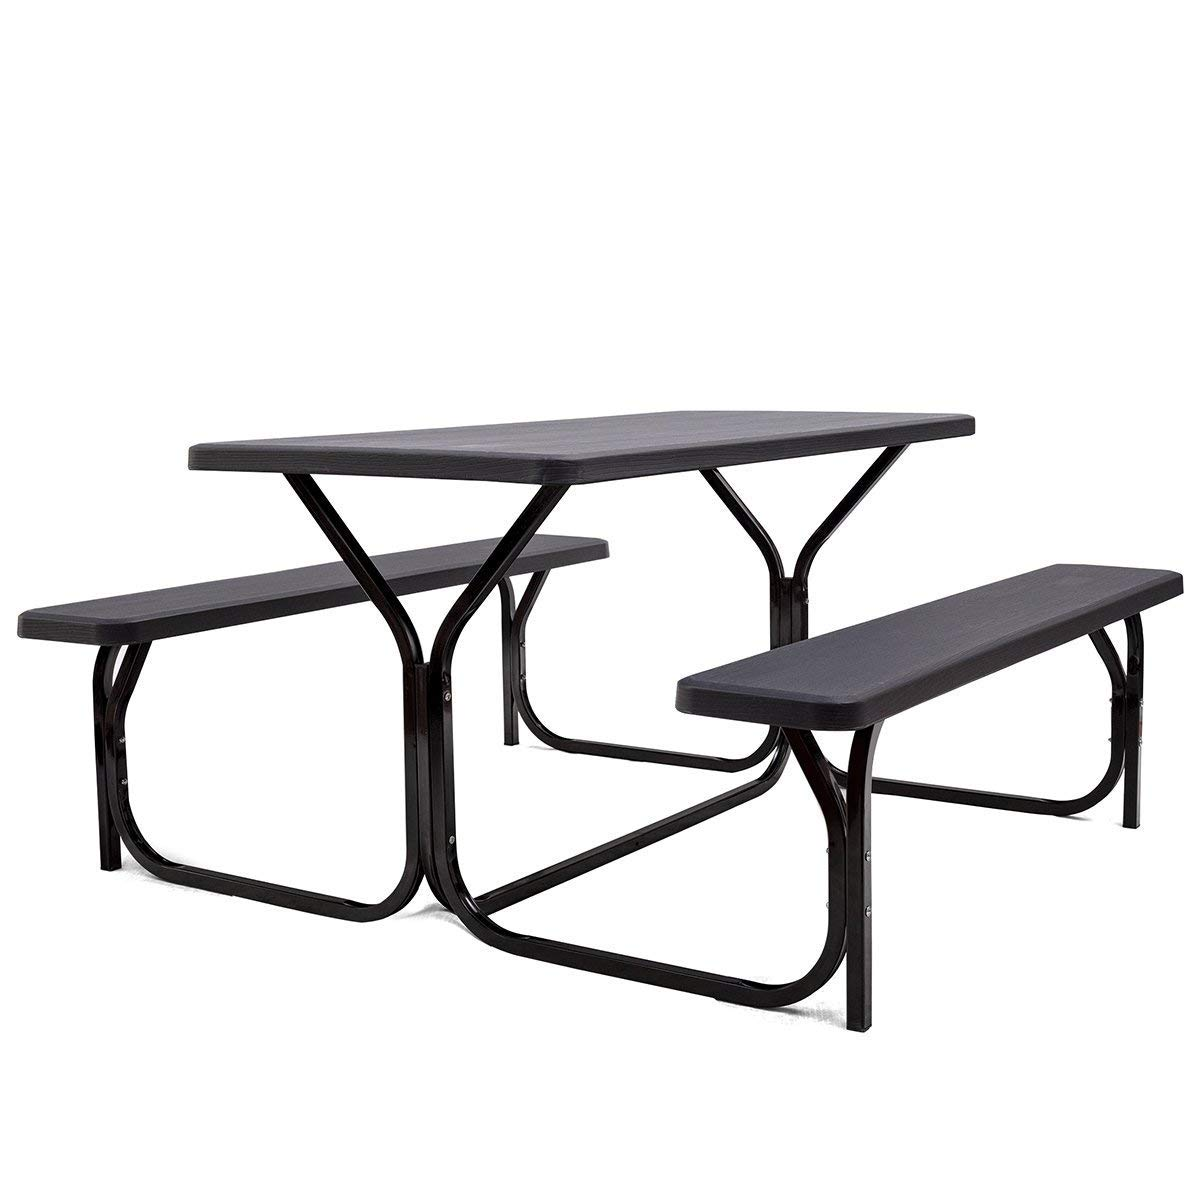 GYMAX Picnic Table, Camping Picnic Tables Bench Set for Outside Backyard Garden Patio Dining Party